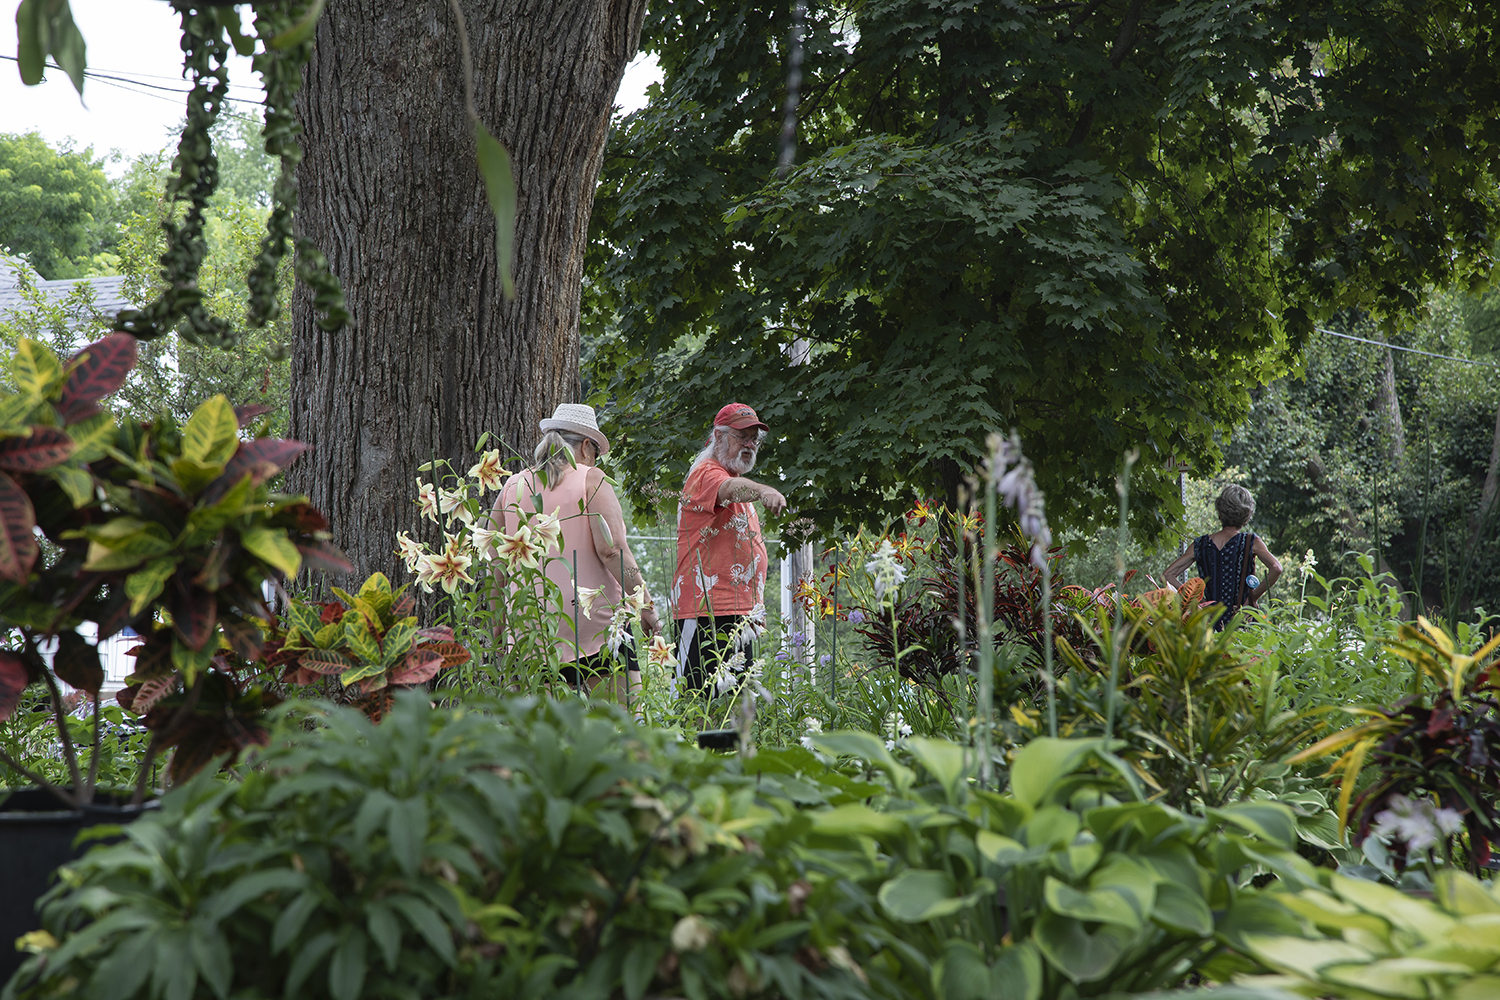 Philip Mears guides visitors at his garden during Open Gardens on Saturday, July 13, 2019. Open Gardens are garden walks hosted by Project Green on July 13-14, 2019. (Tian Liu/The Daily Iowan)